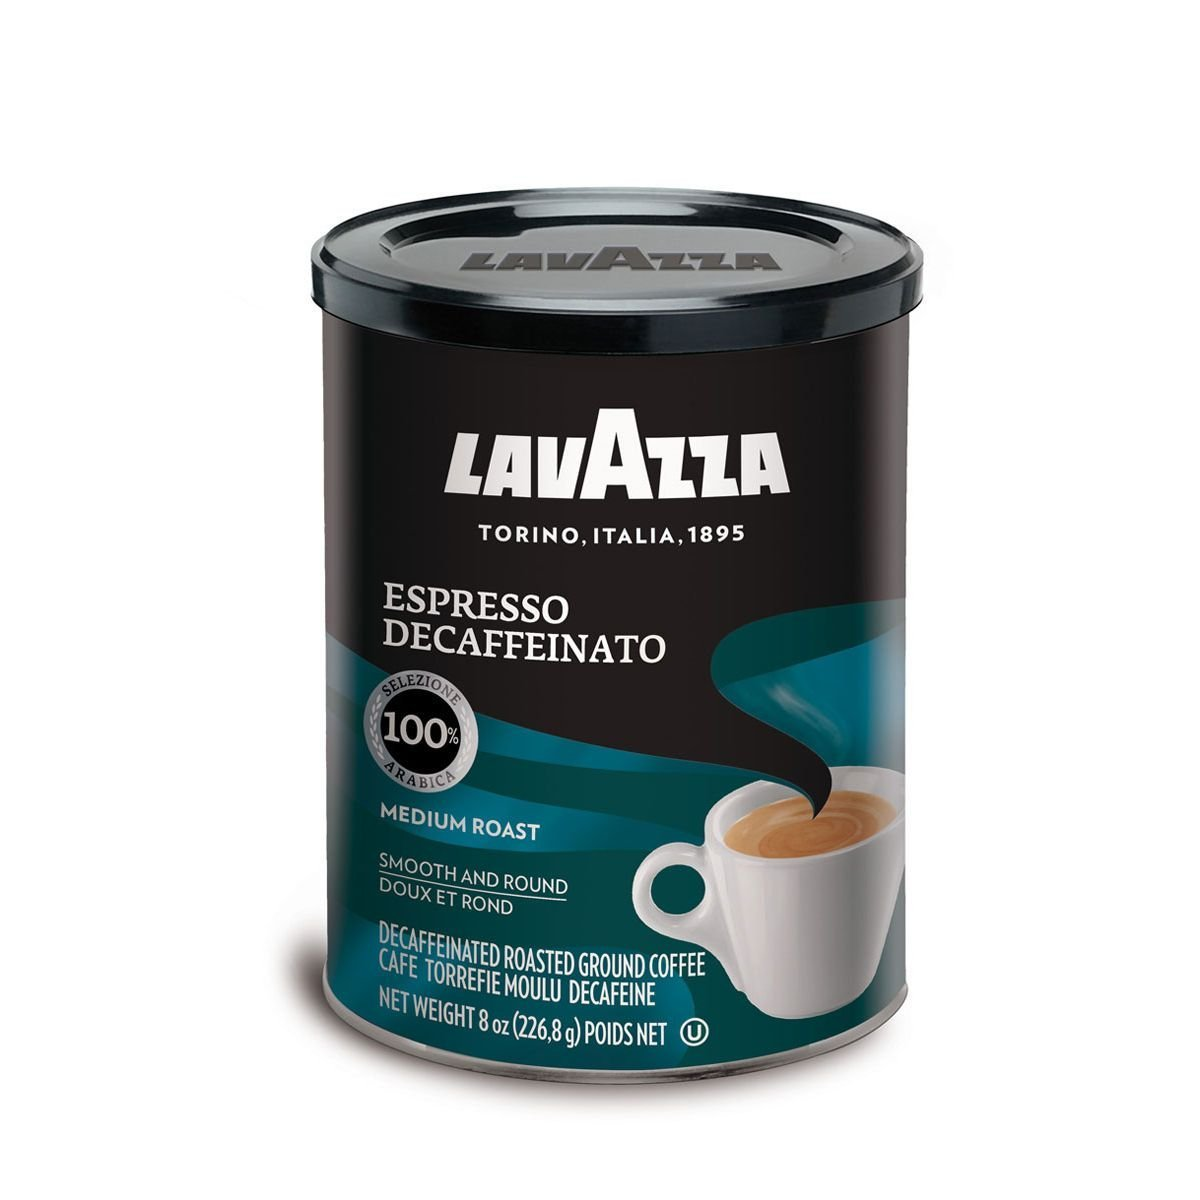 Lavazza Espresso Decaffeinato Ground Coffee Blend, Decaffeinated Medium Roast, 8-Ounce Can